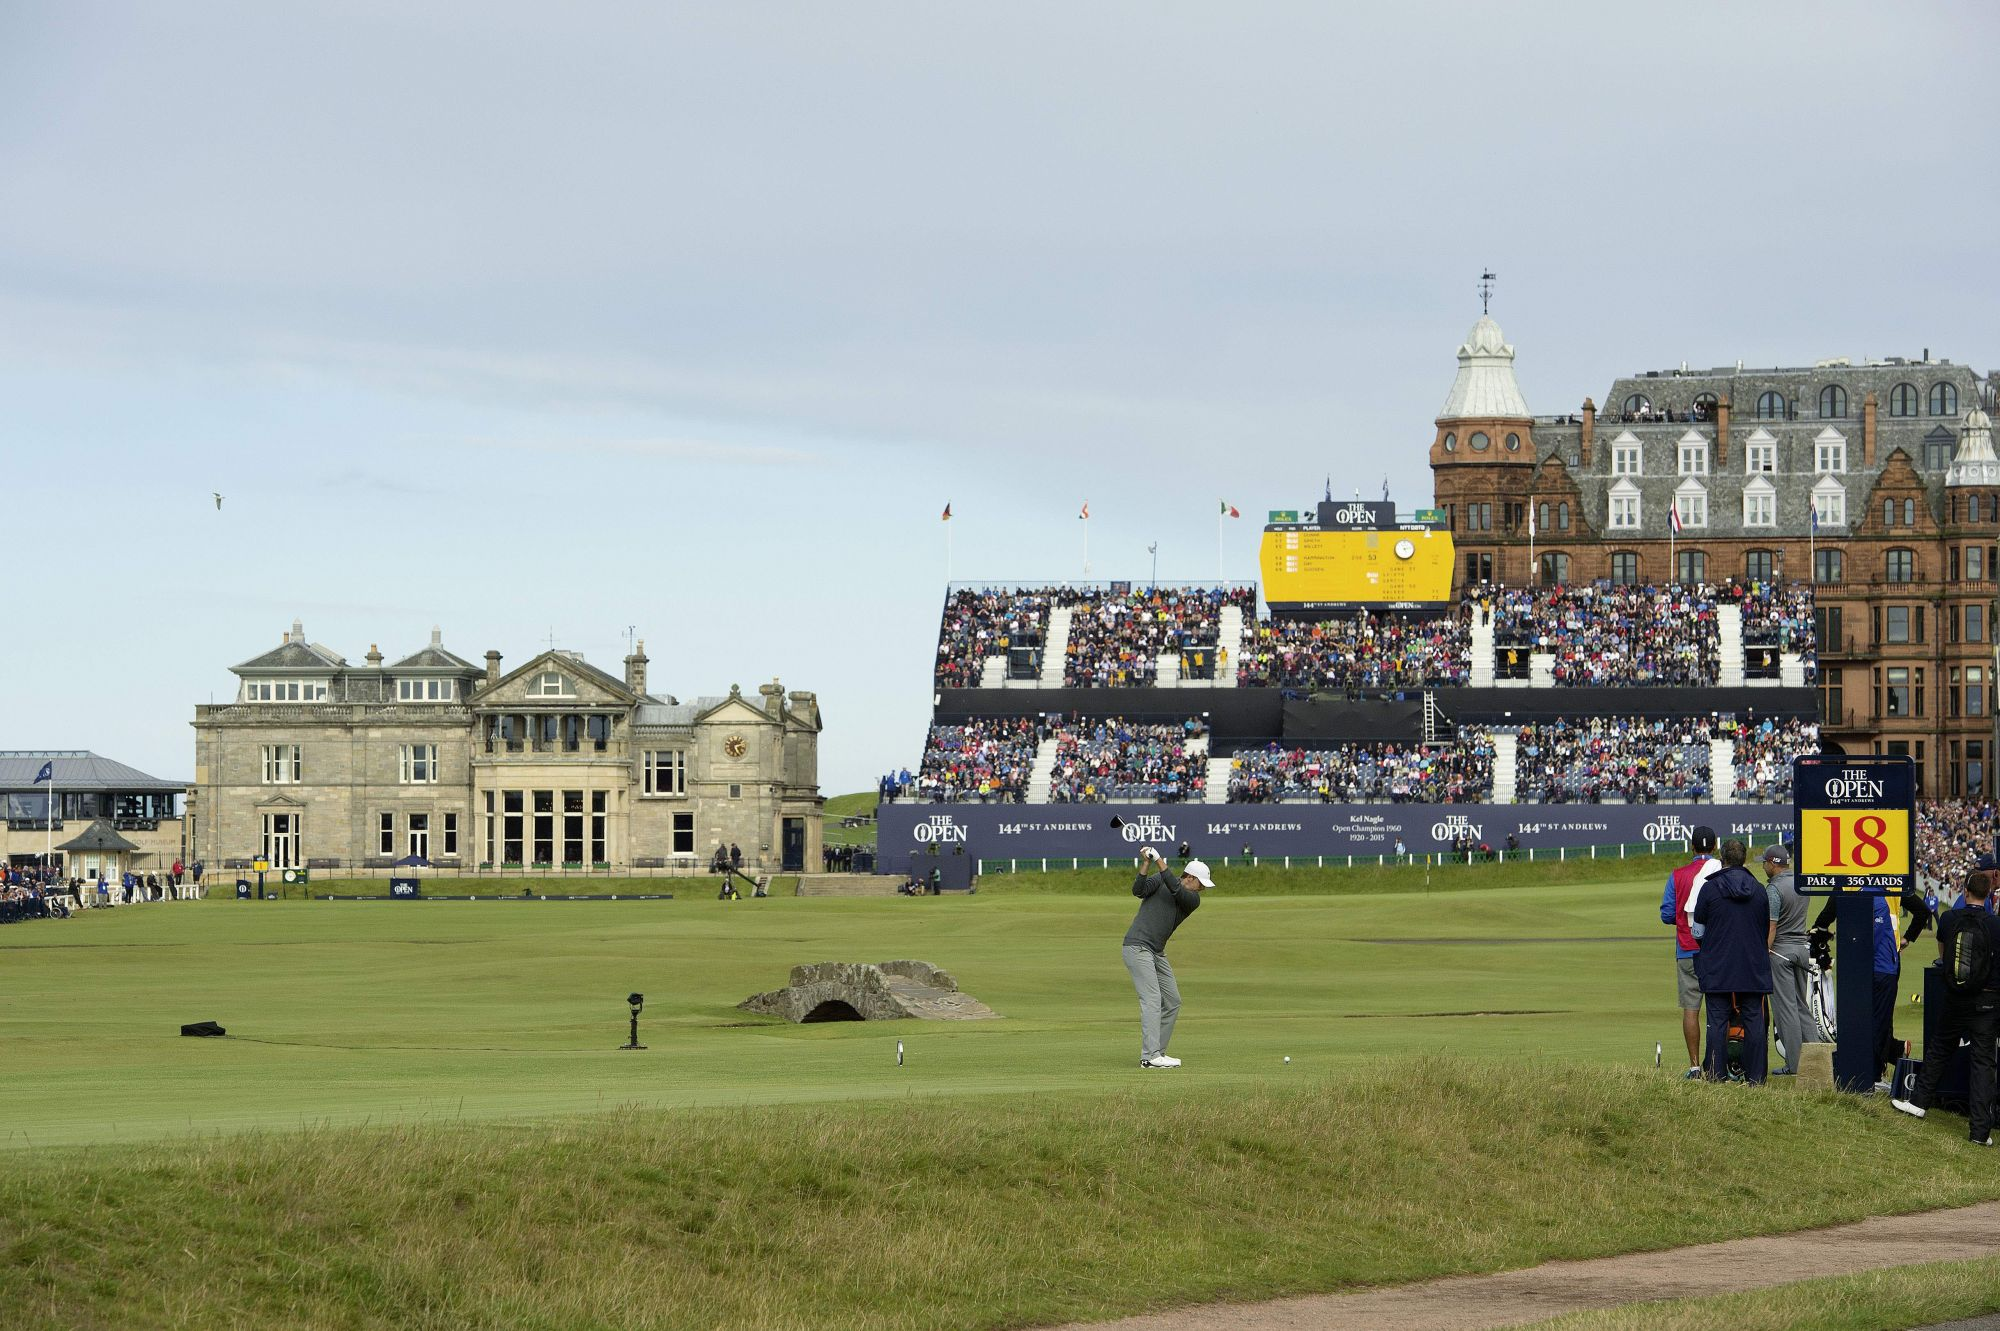 THE OPEN, OLD COURSE AT ST. ANDREWS, 2015, ROLEX TESTIMONEE JORDAN SPIETH